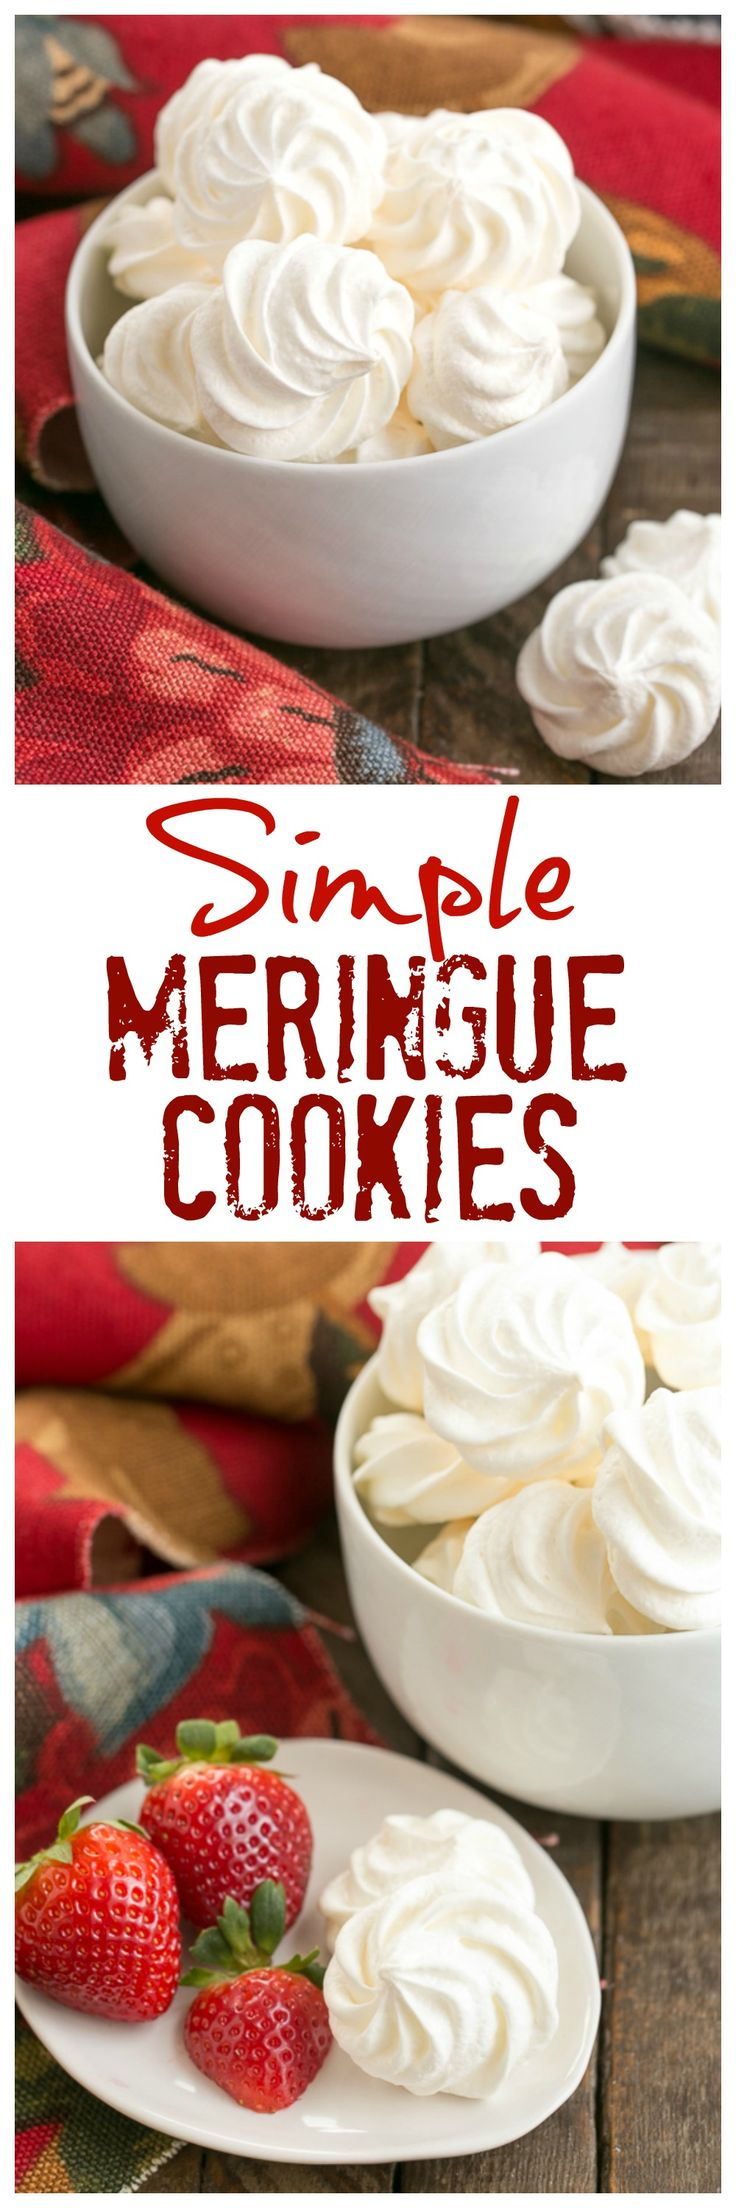 Simple Meringue Cookies | Sweet, ethereal, melt in your mouth cookies @lizzydo